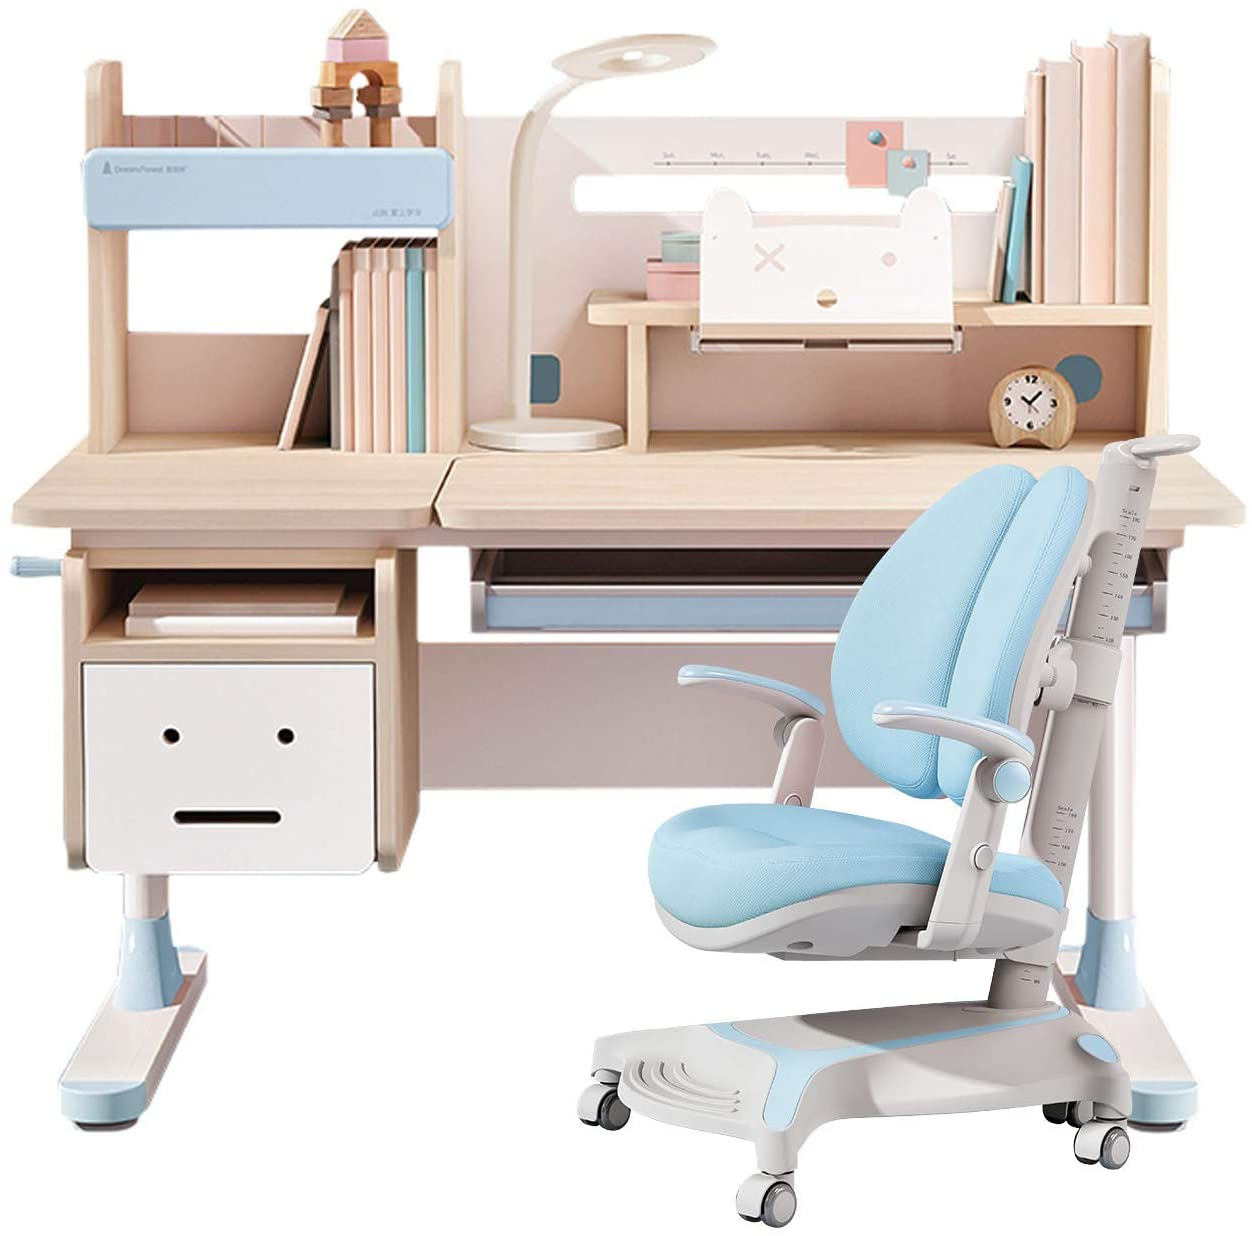 Buy Wood Adjustable Height Kids Study Desk with Chair Drafting Table Computer Station Built-in Bookshelf Hutch Multi Function (Blue, Wood of Fir) Online in Turkey. B08D3H8JQW